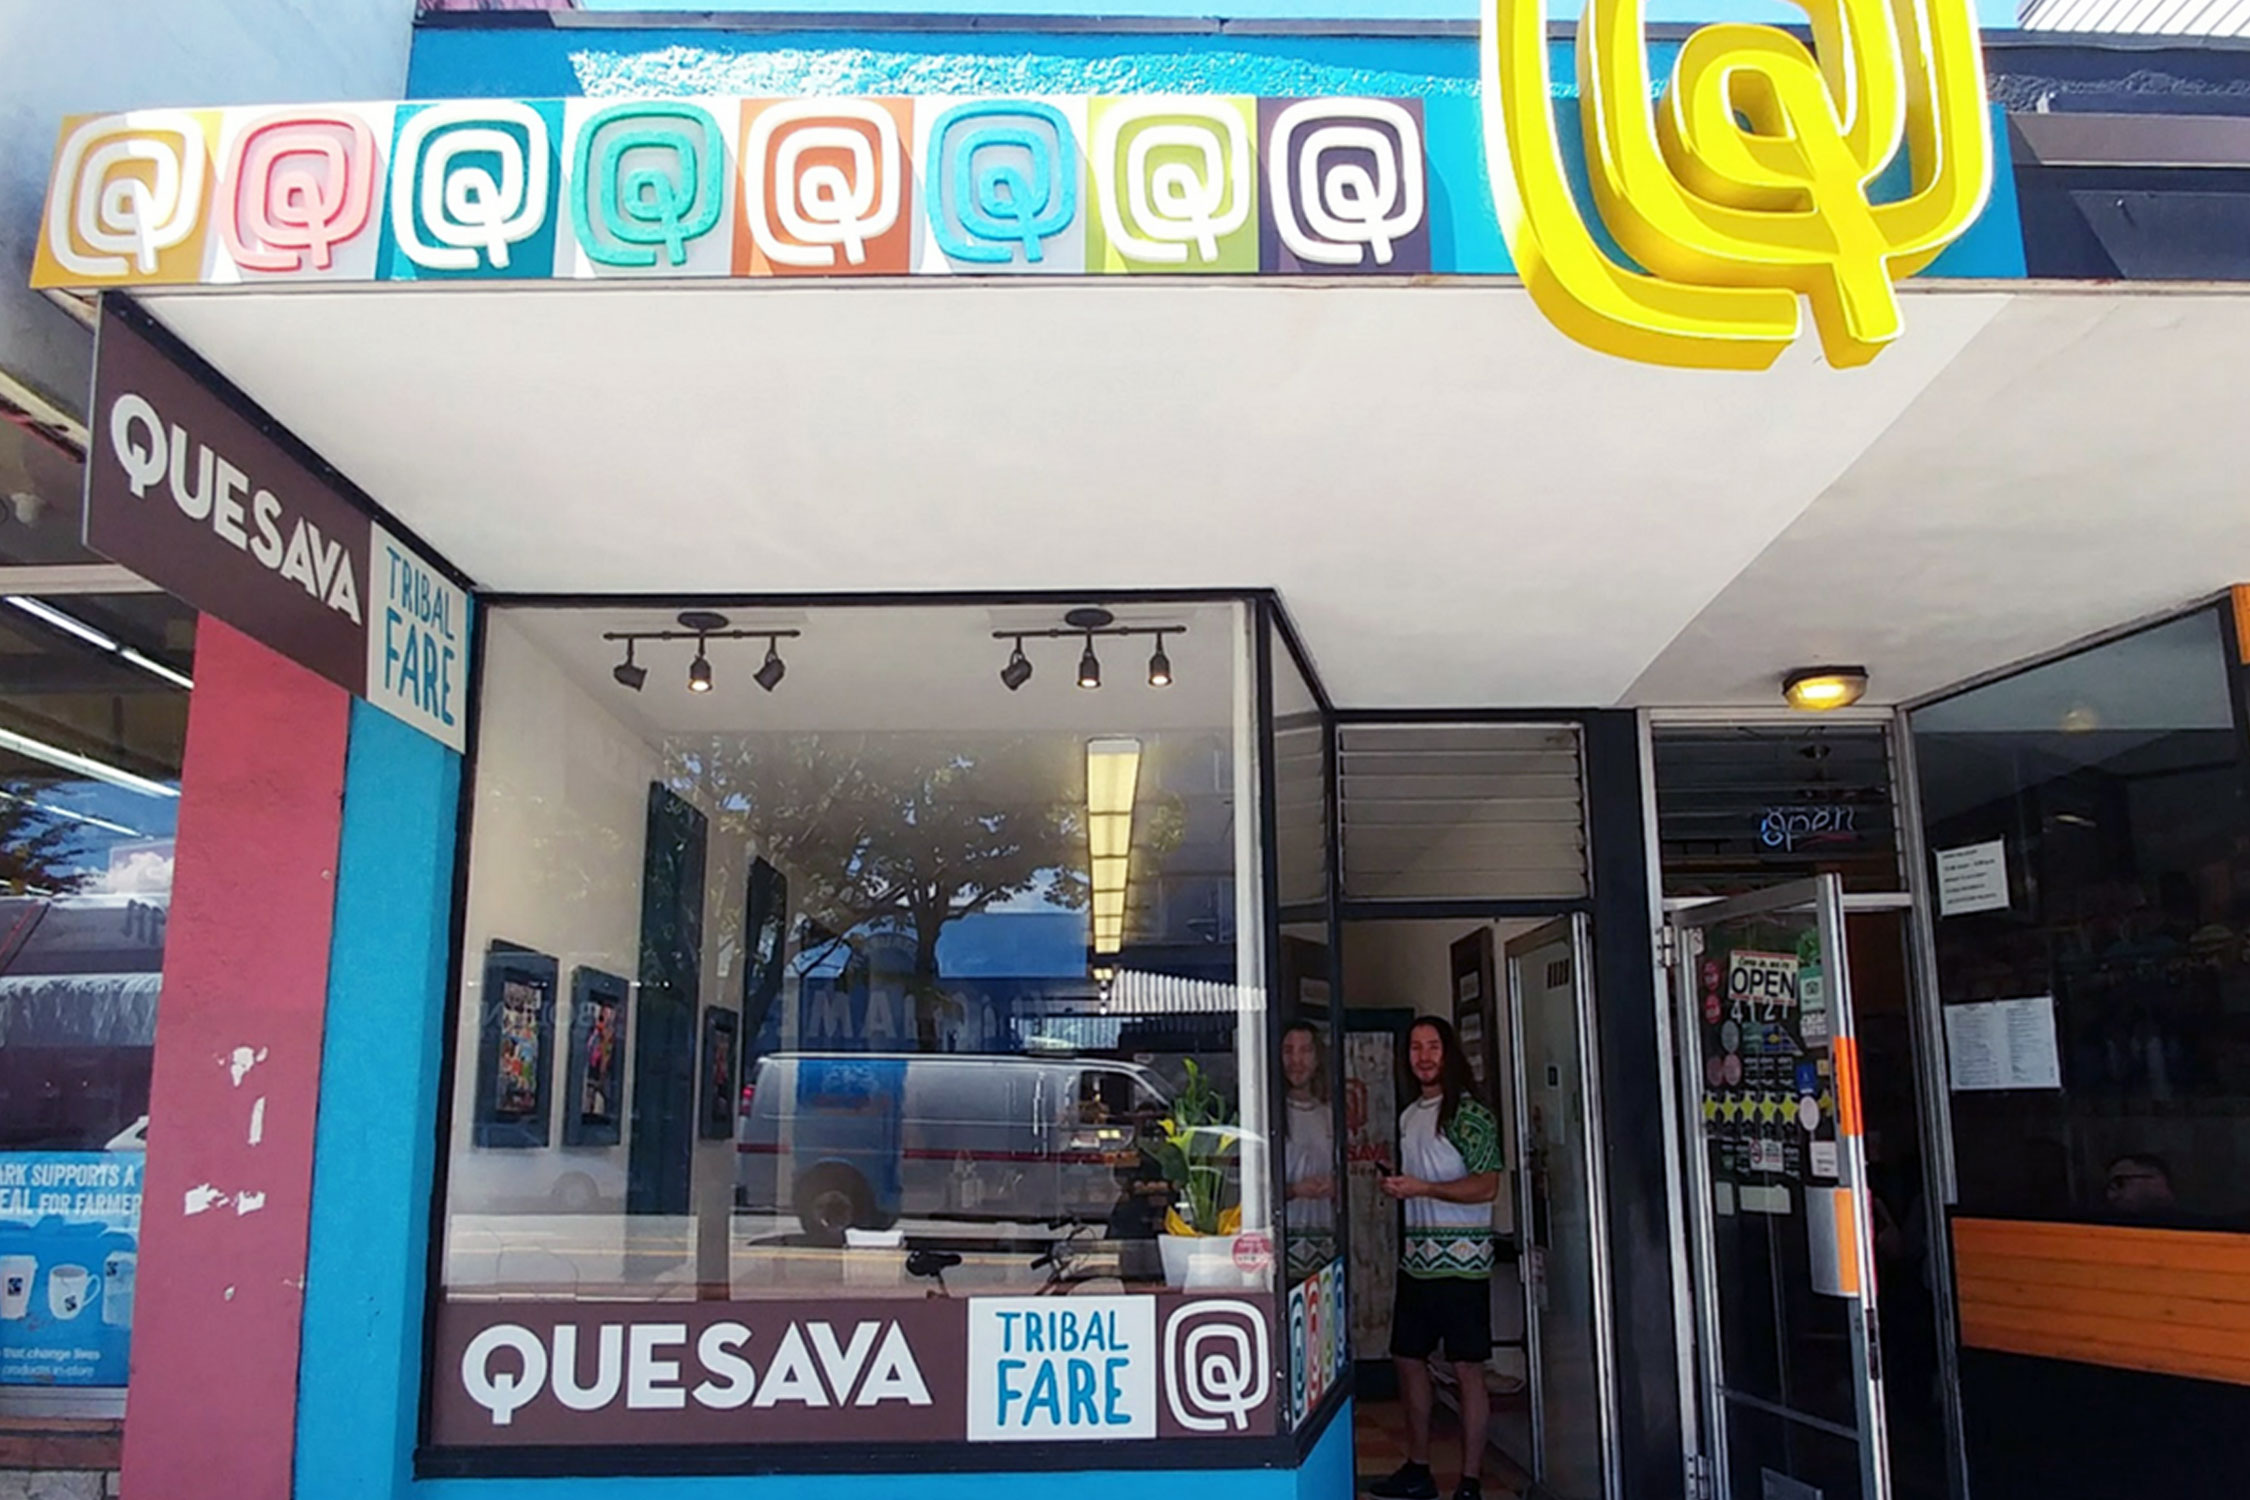 Visit Quesava's storefront location at 4129 Main St, Vancouver, or grab their handmade products at your favourite grocery store.  (Photo courtesy of Quesava.)